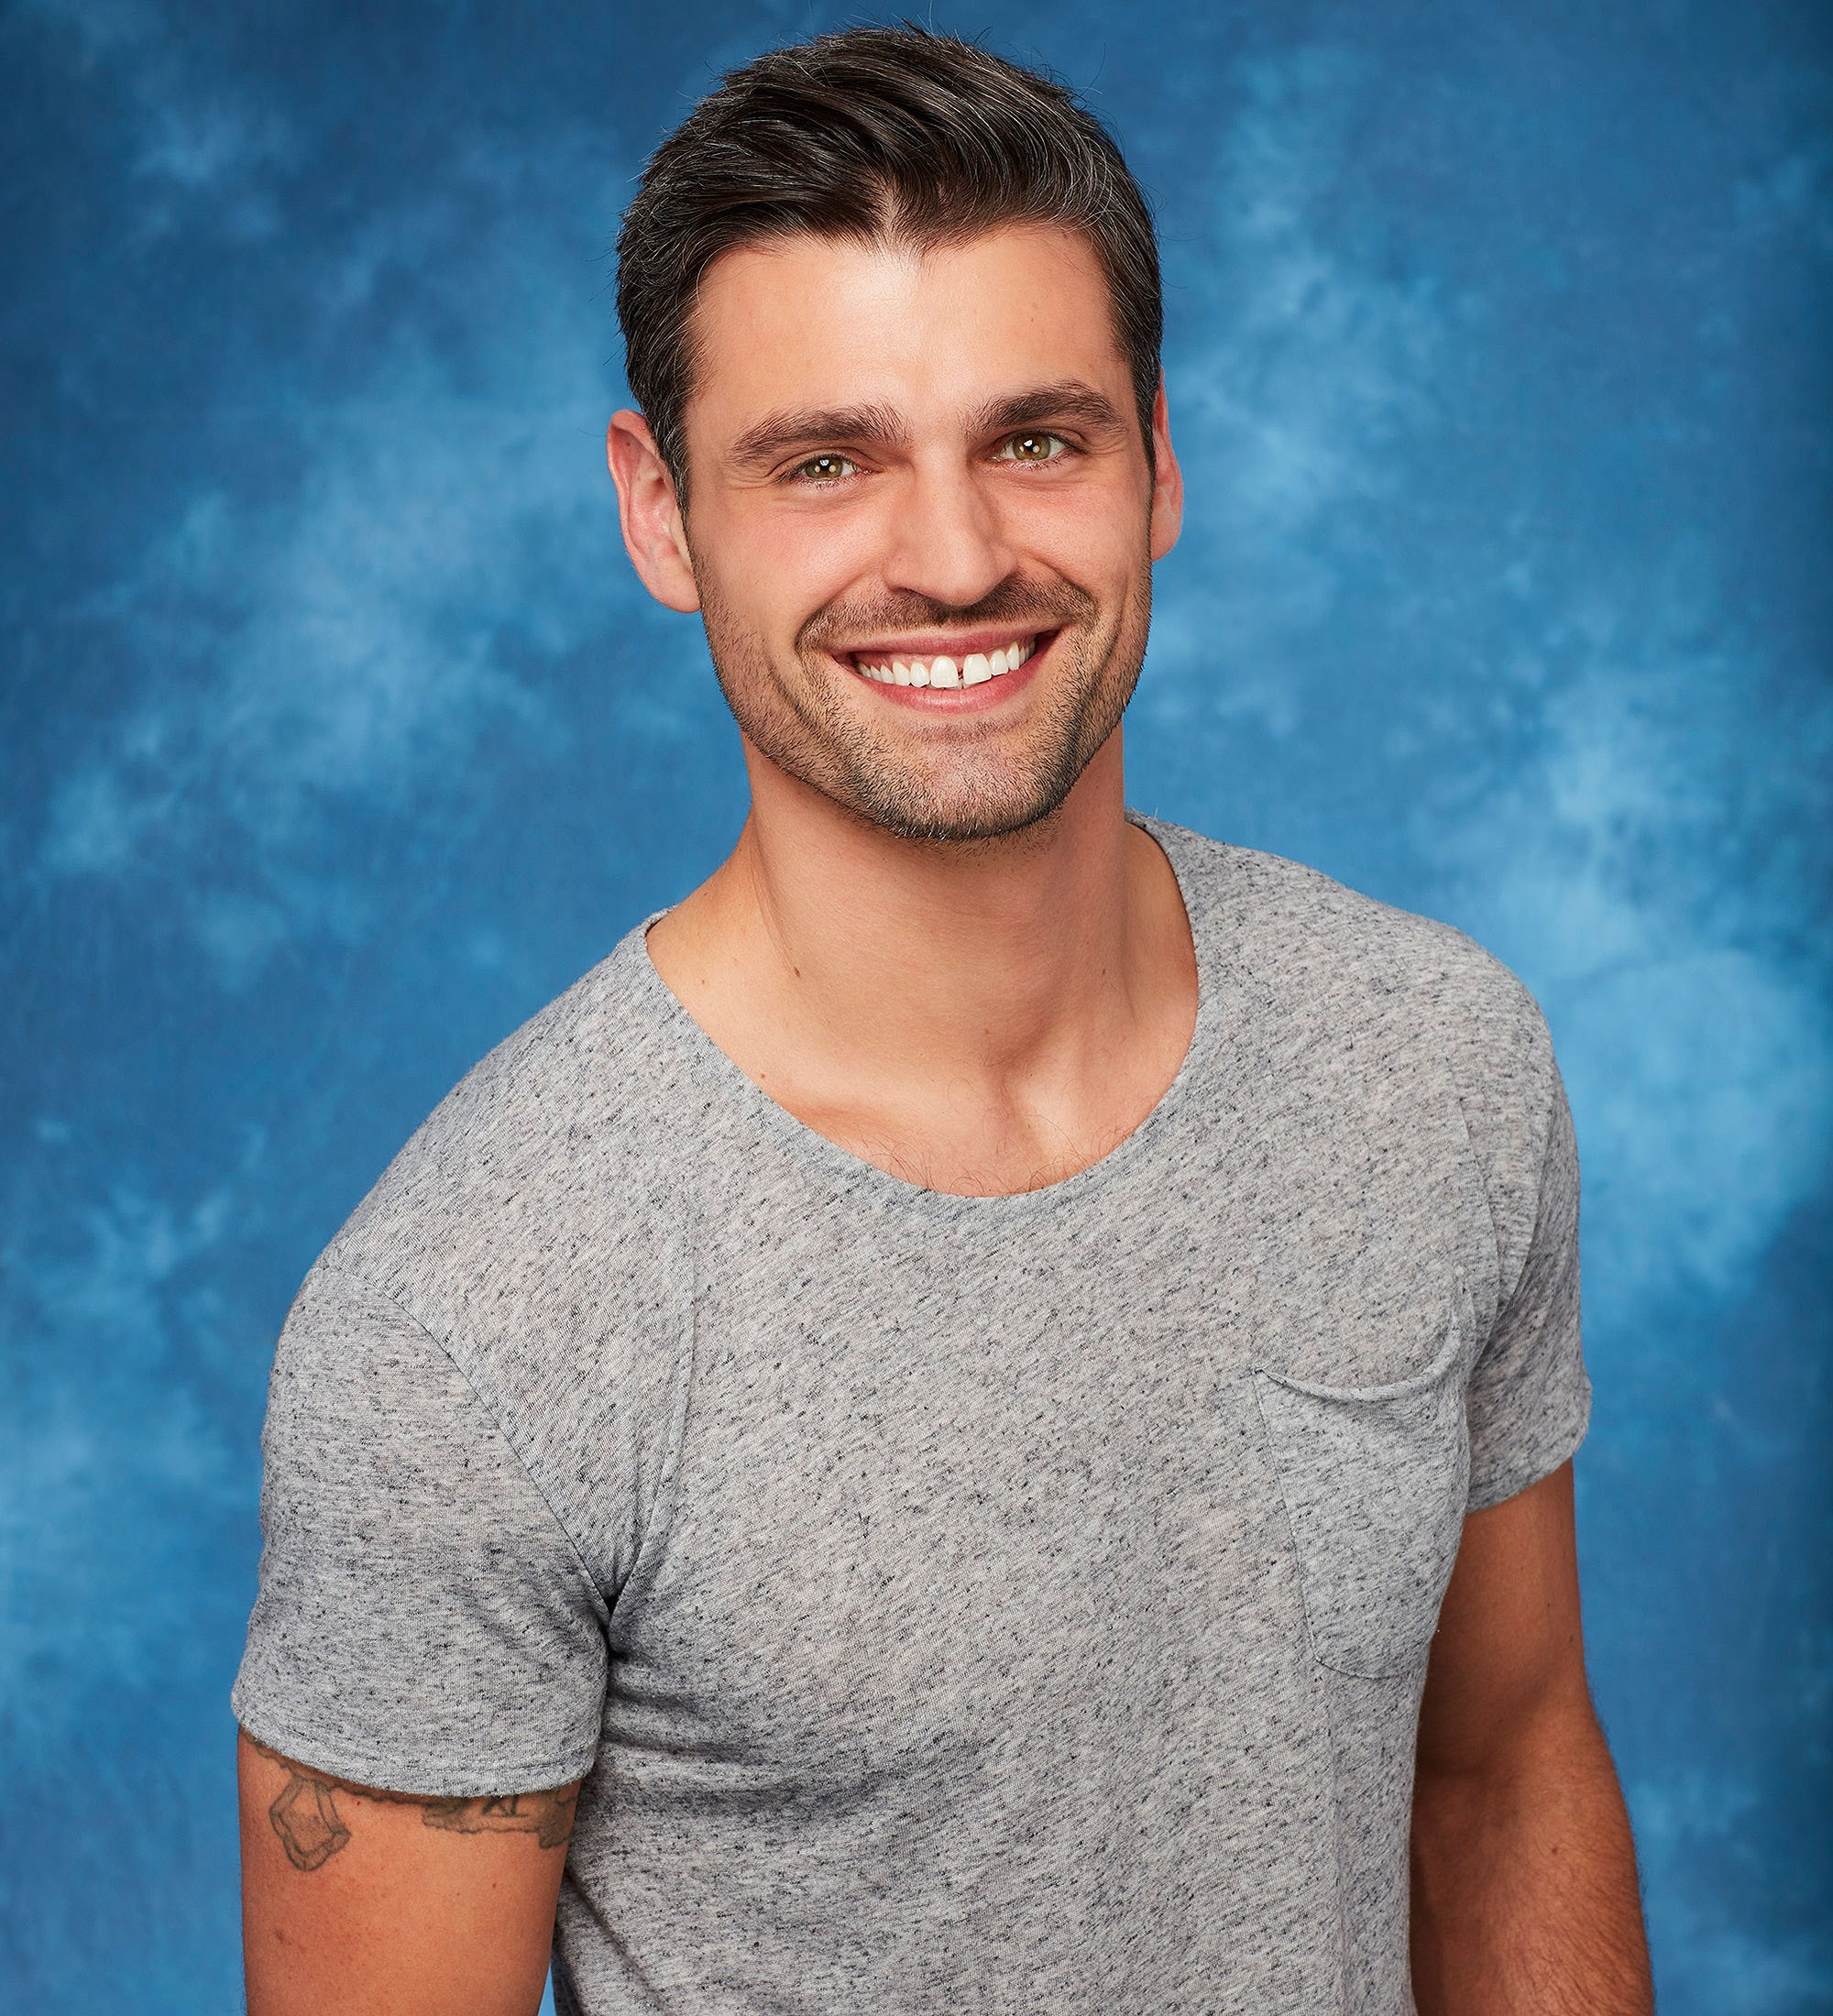 'The Bachelorette' finale: Who the former contestants think will win